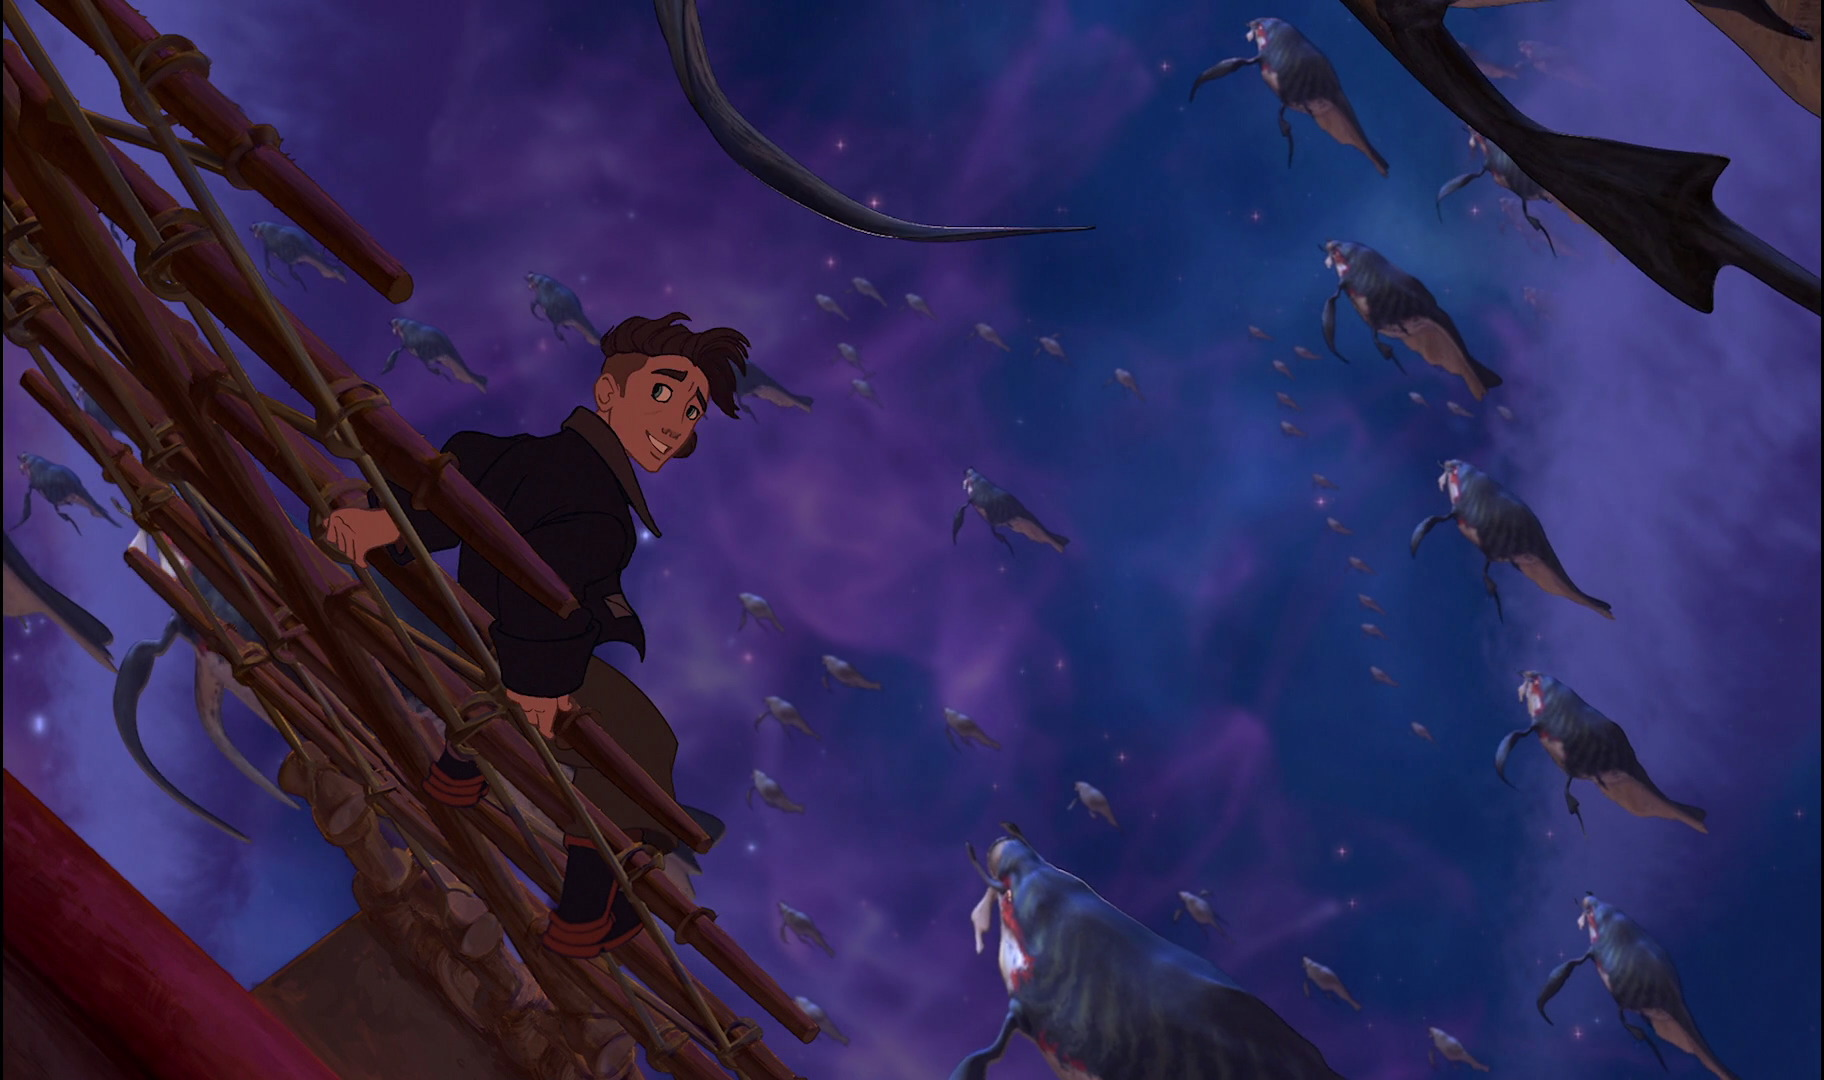 jim hawkins in the night